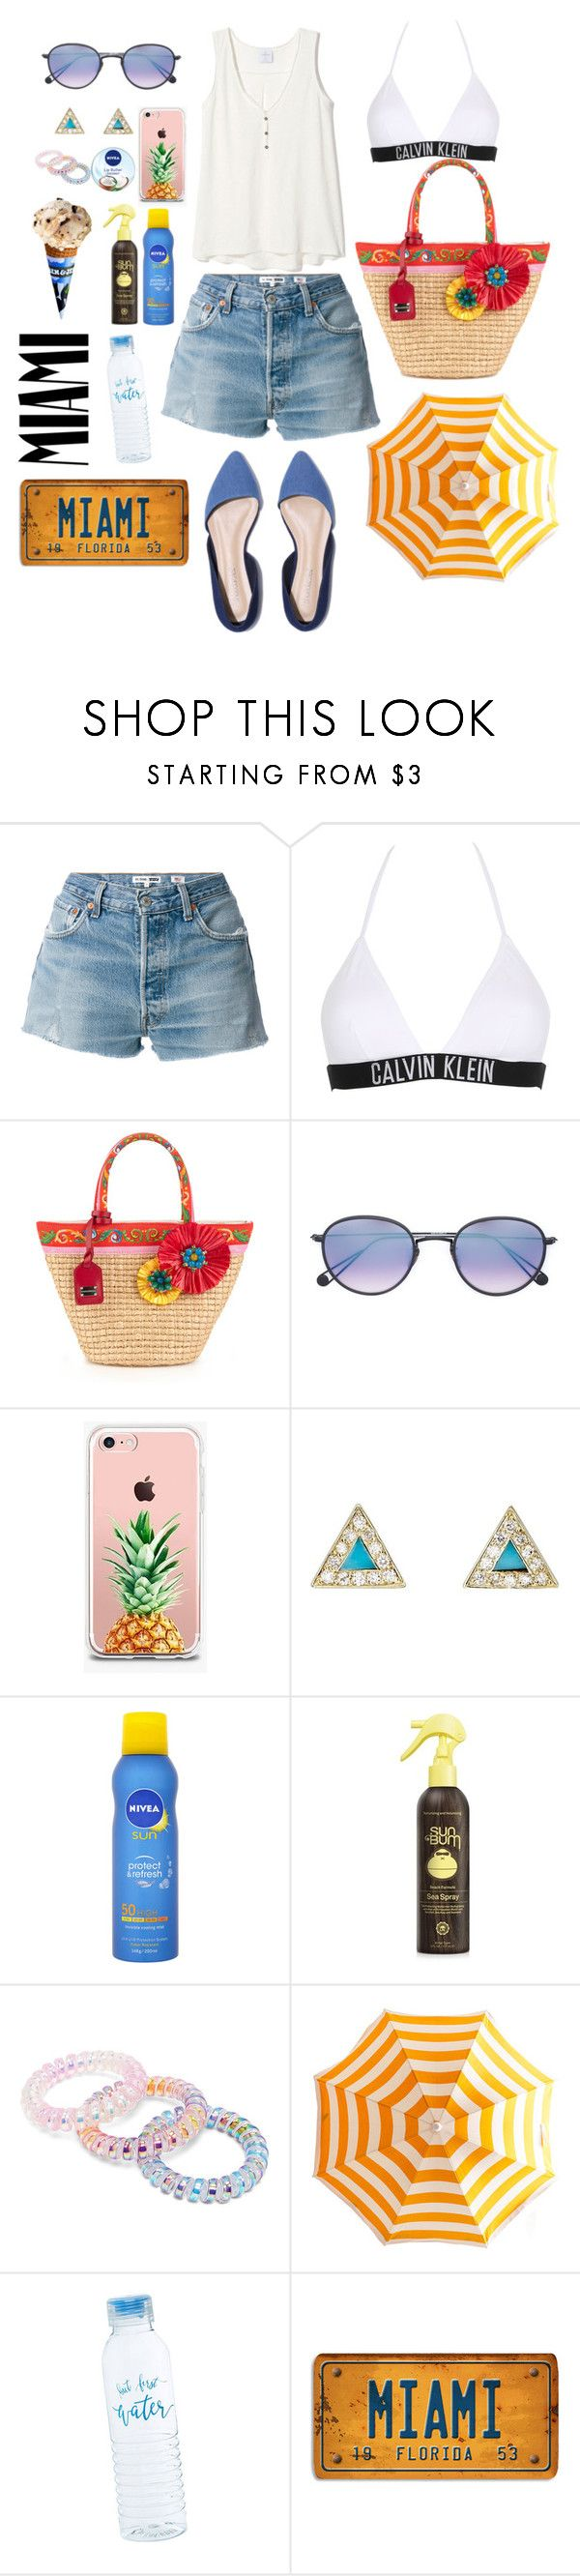 """""""Day In Miami"""" by valenlss ❤ liked on Polyvore featuring RE/DONE, Calvin Klein, Dolce&Gabbana, Garrett Leight, The Casery, Jennifer Meyer Jewelry, Nivea and Forever 21"""